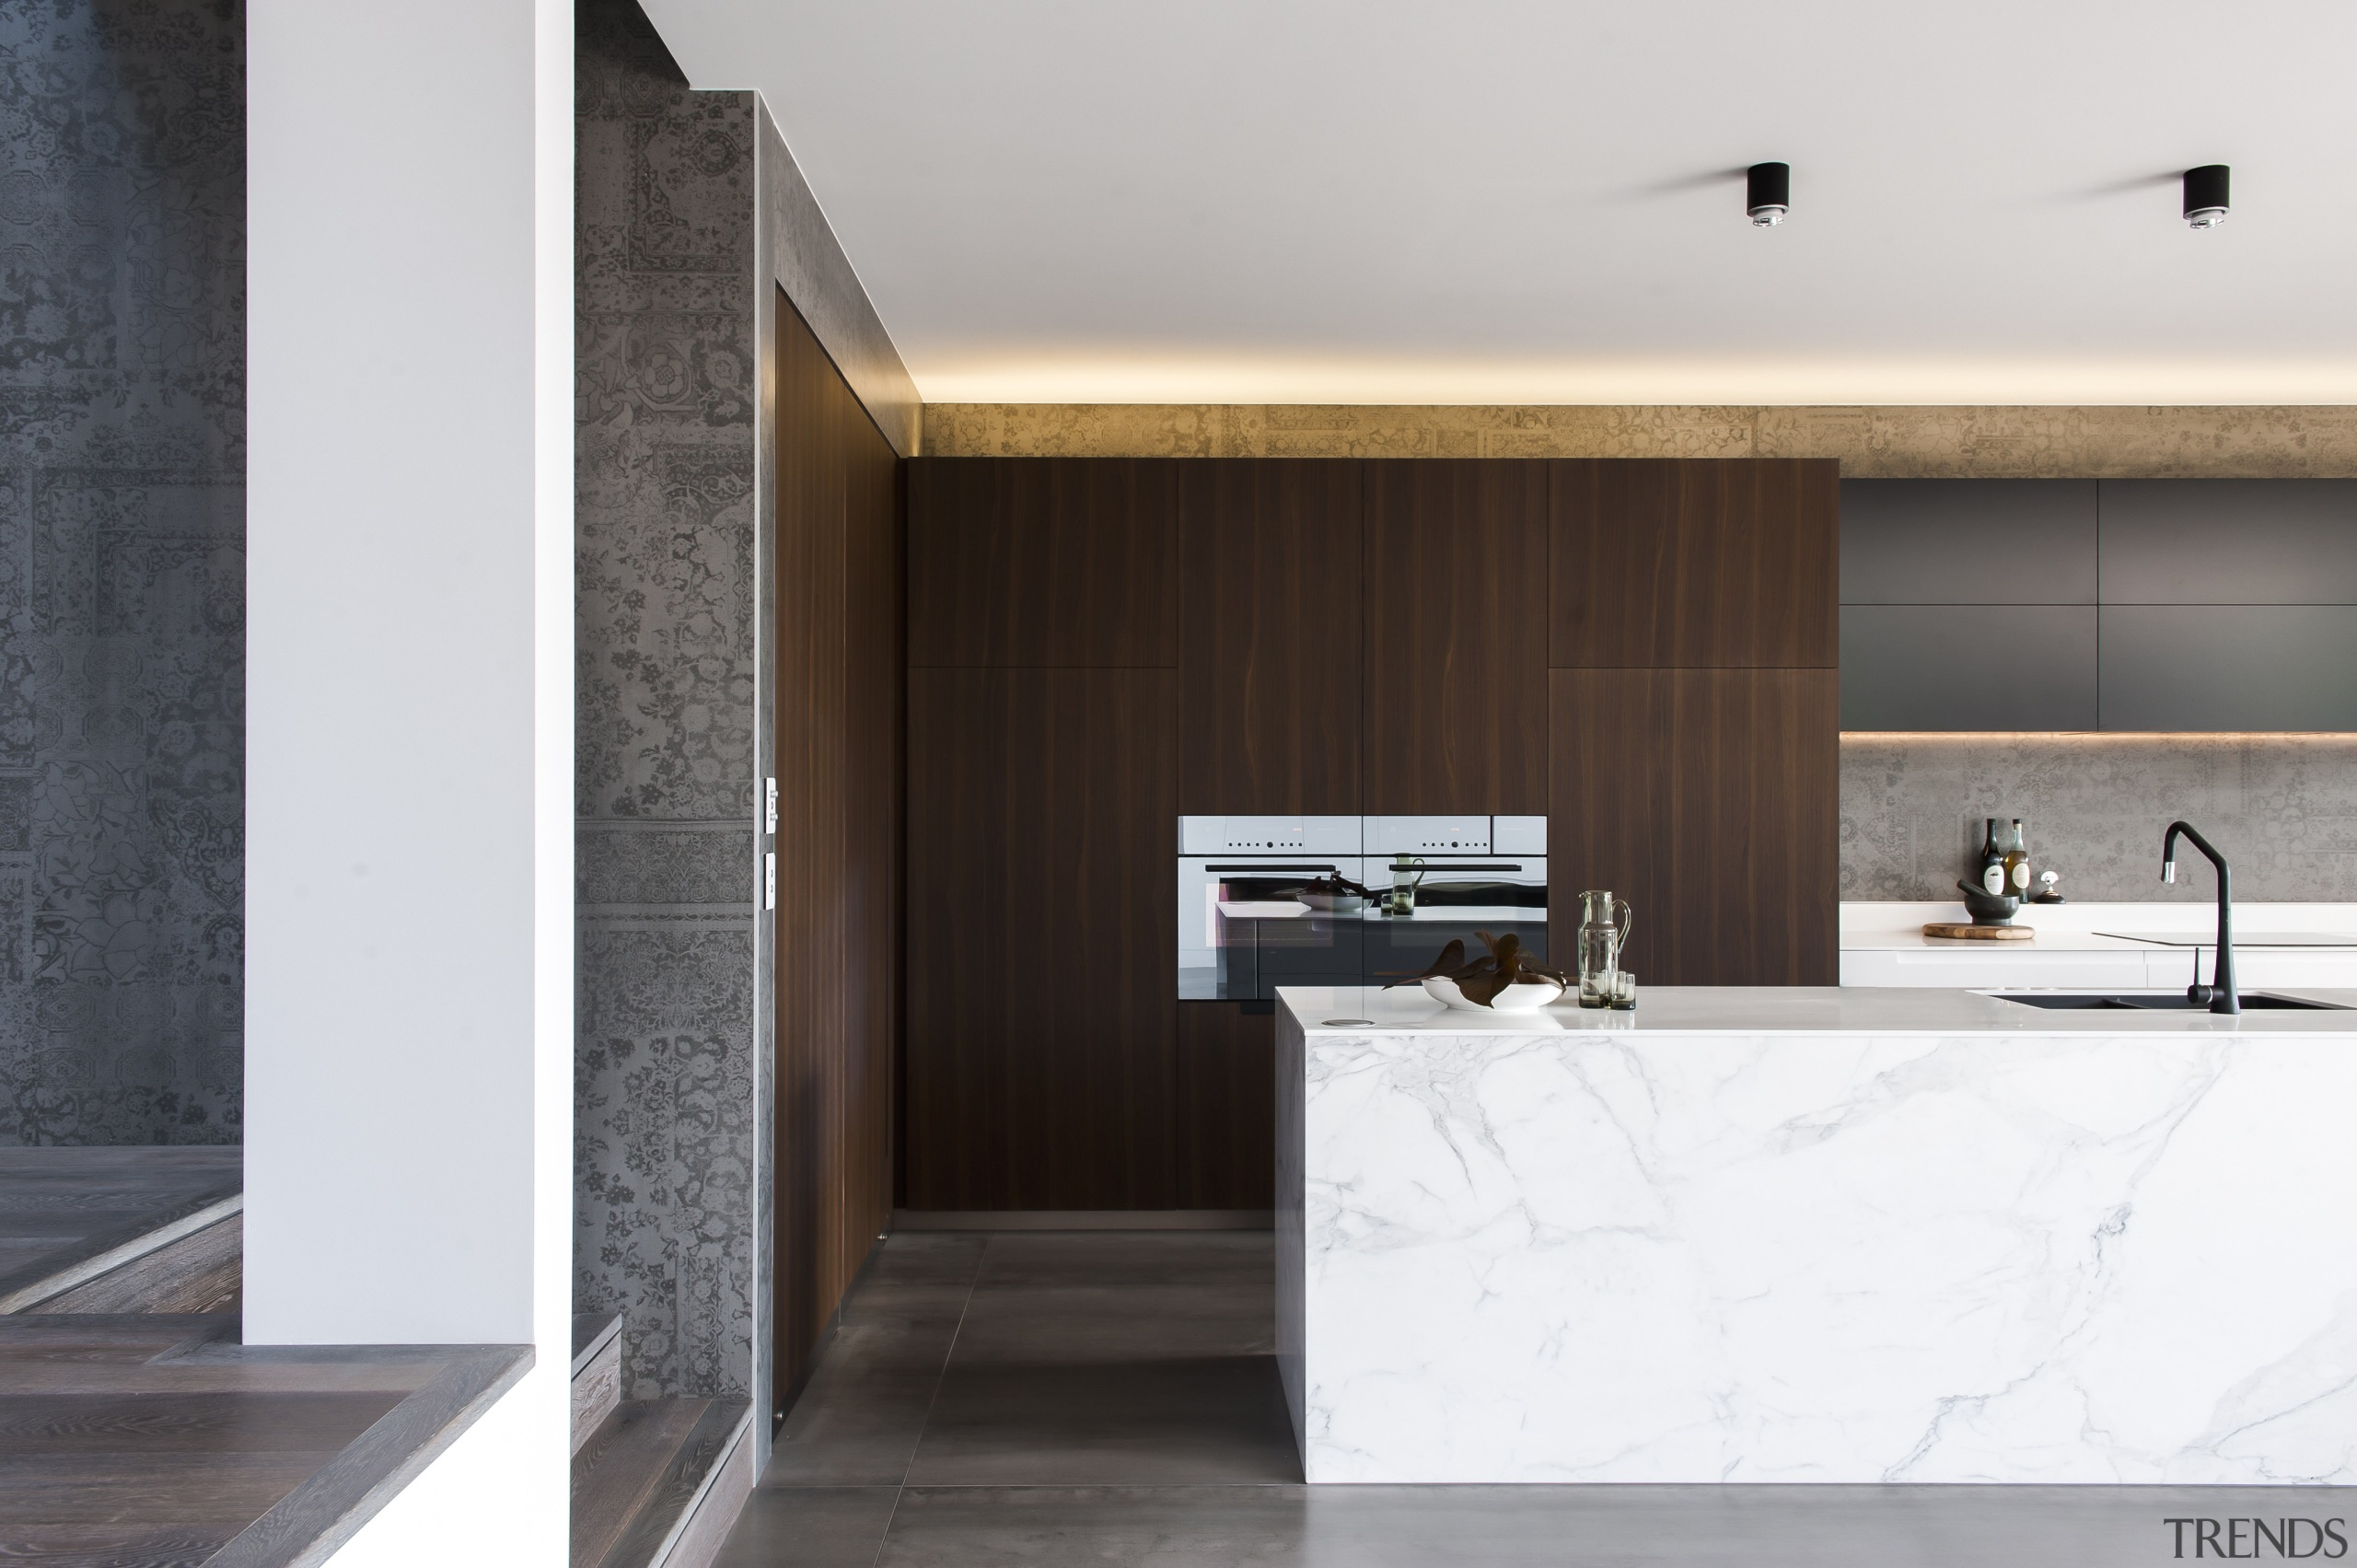 There are three ways into this kitchen, from architecture, countertop, floor, interior design, product design, white, black